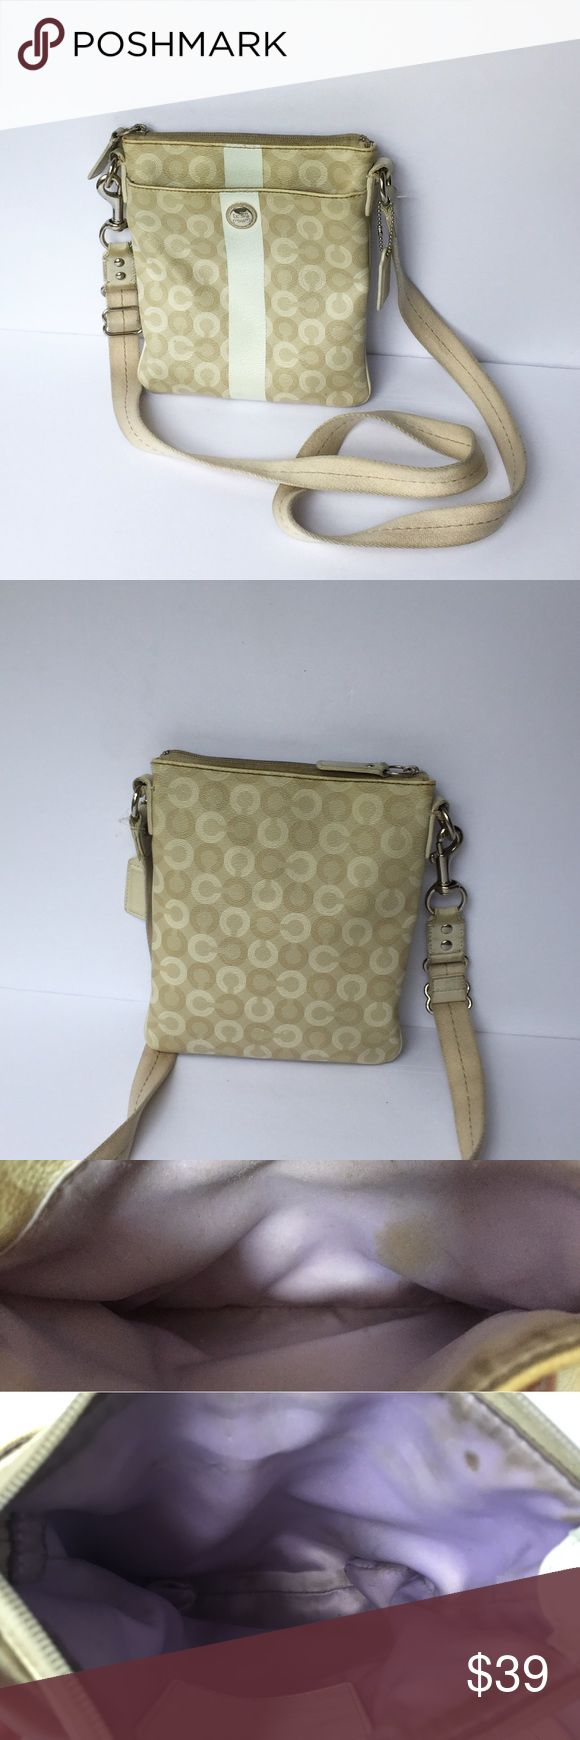 Waverly CC COACH Swingpack A beautiful style with a crossbody strap in a USED condition with signs of removable marks inside the both pockets, also on the handles ends and front white strip which appears like blue . But a beautiful style of bag with lots of life. 0167810768 Coach Bags Crossbody Bags